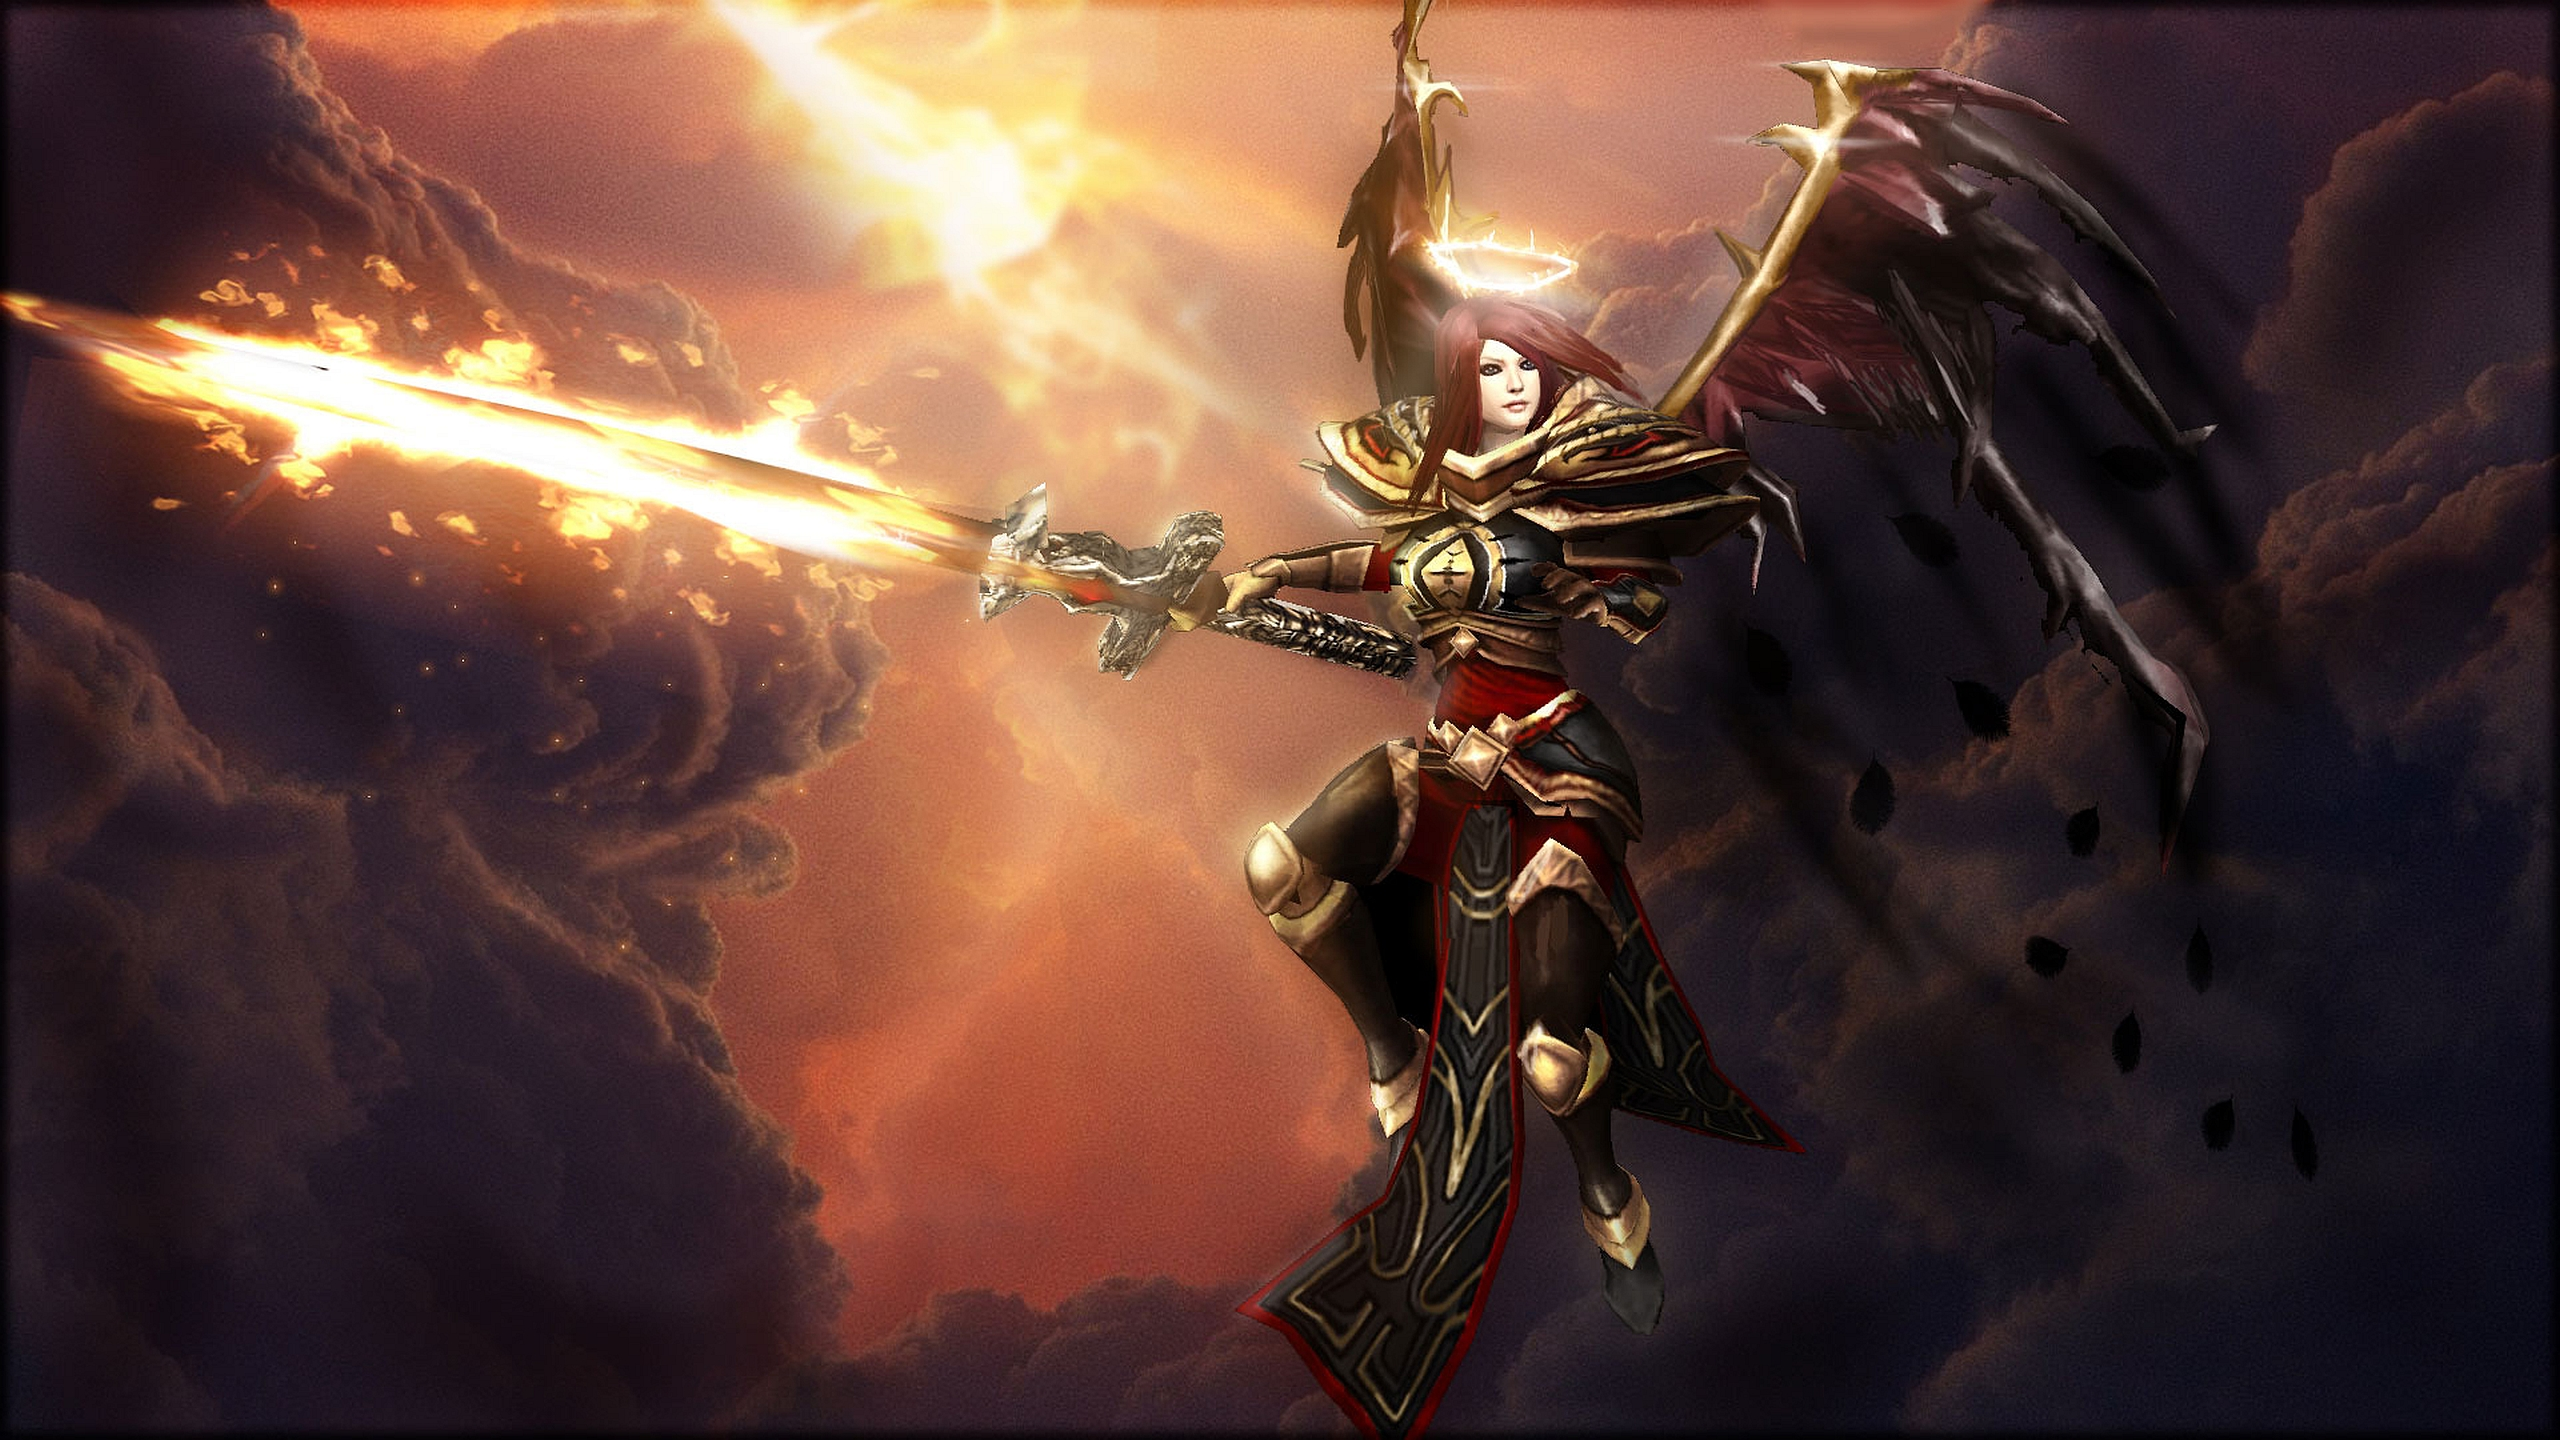 League Of Legends Hd Wallpaper Background Image 2560x1440 Id